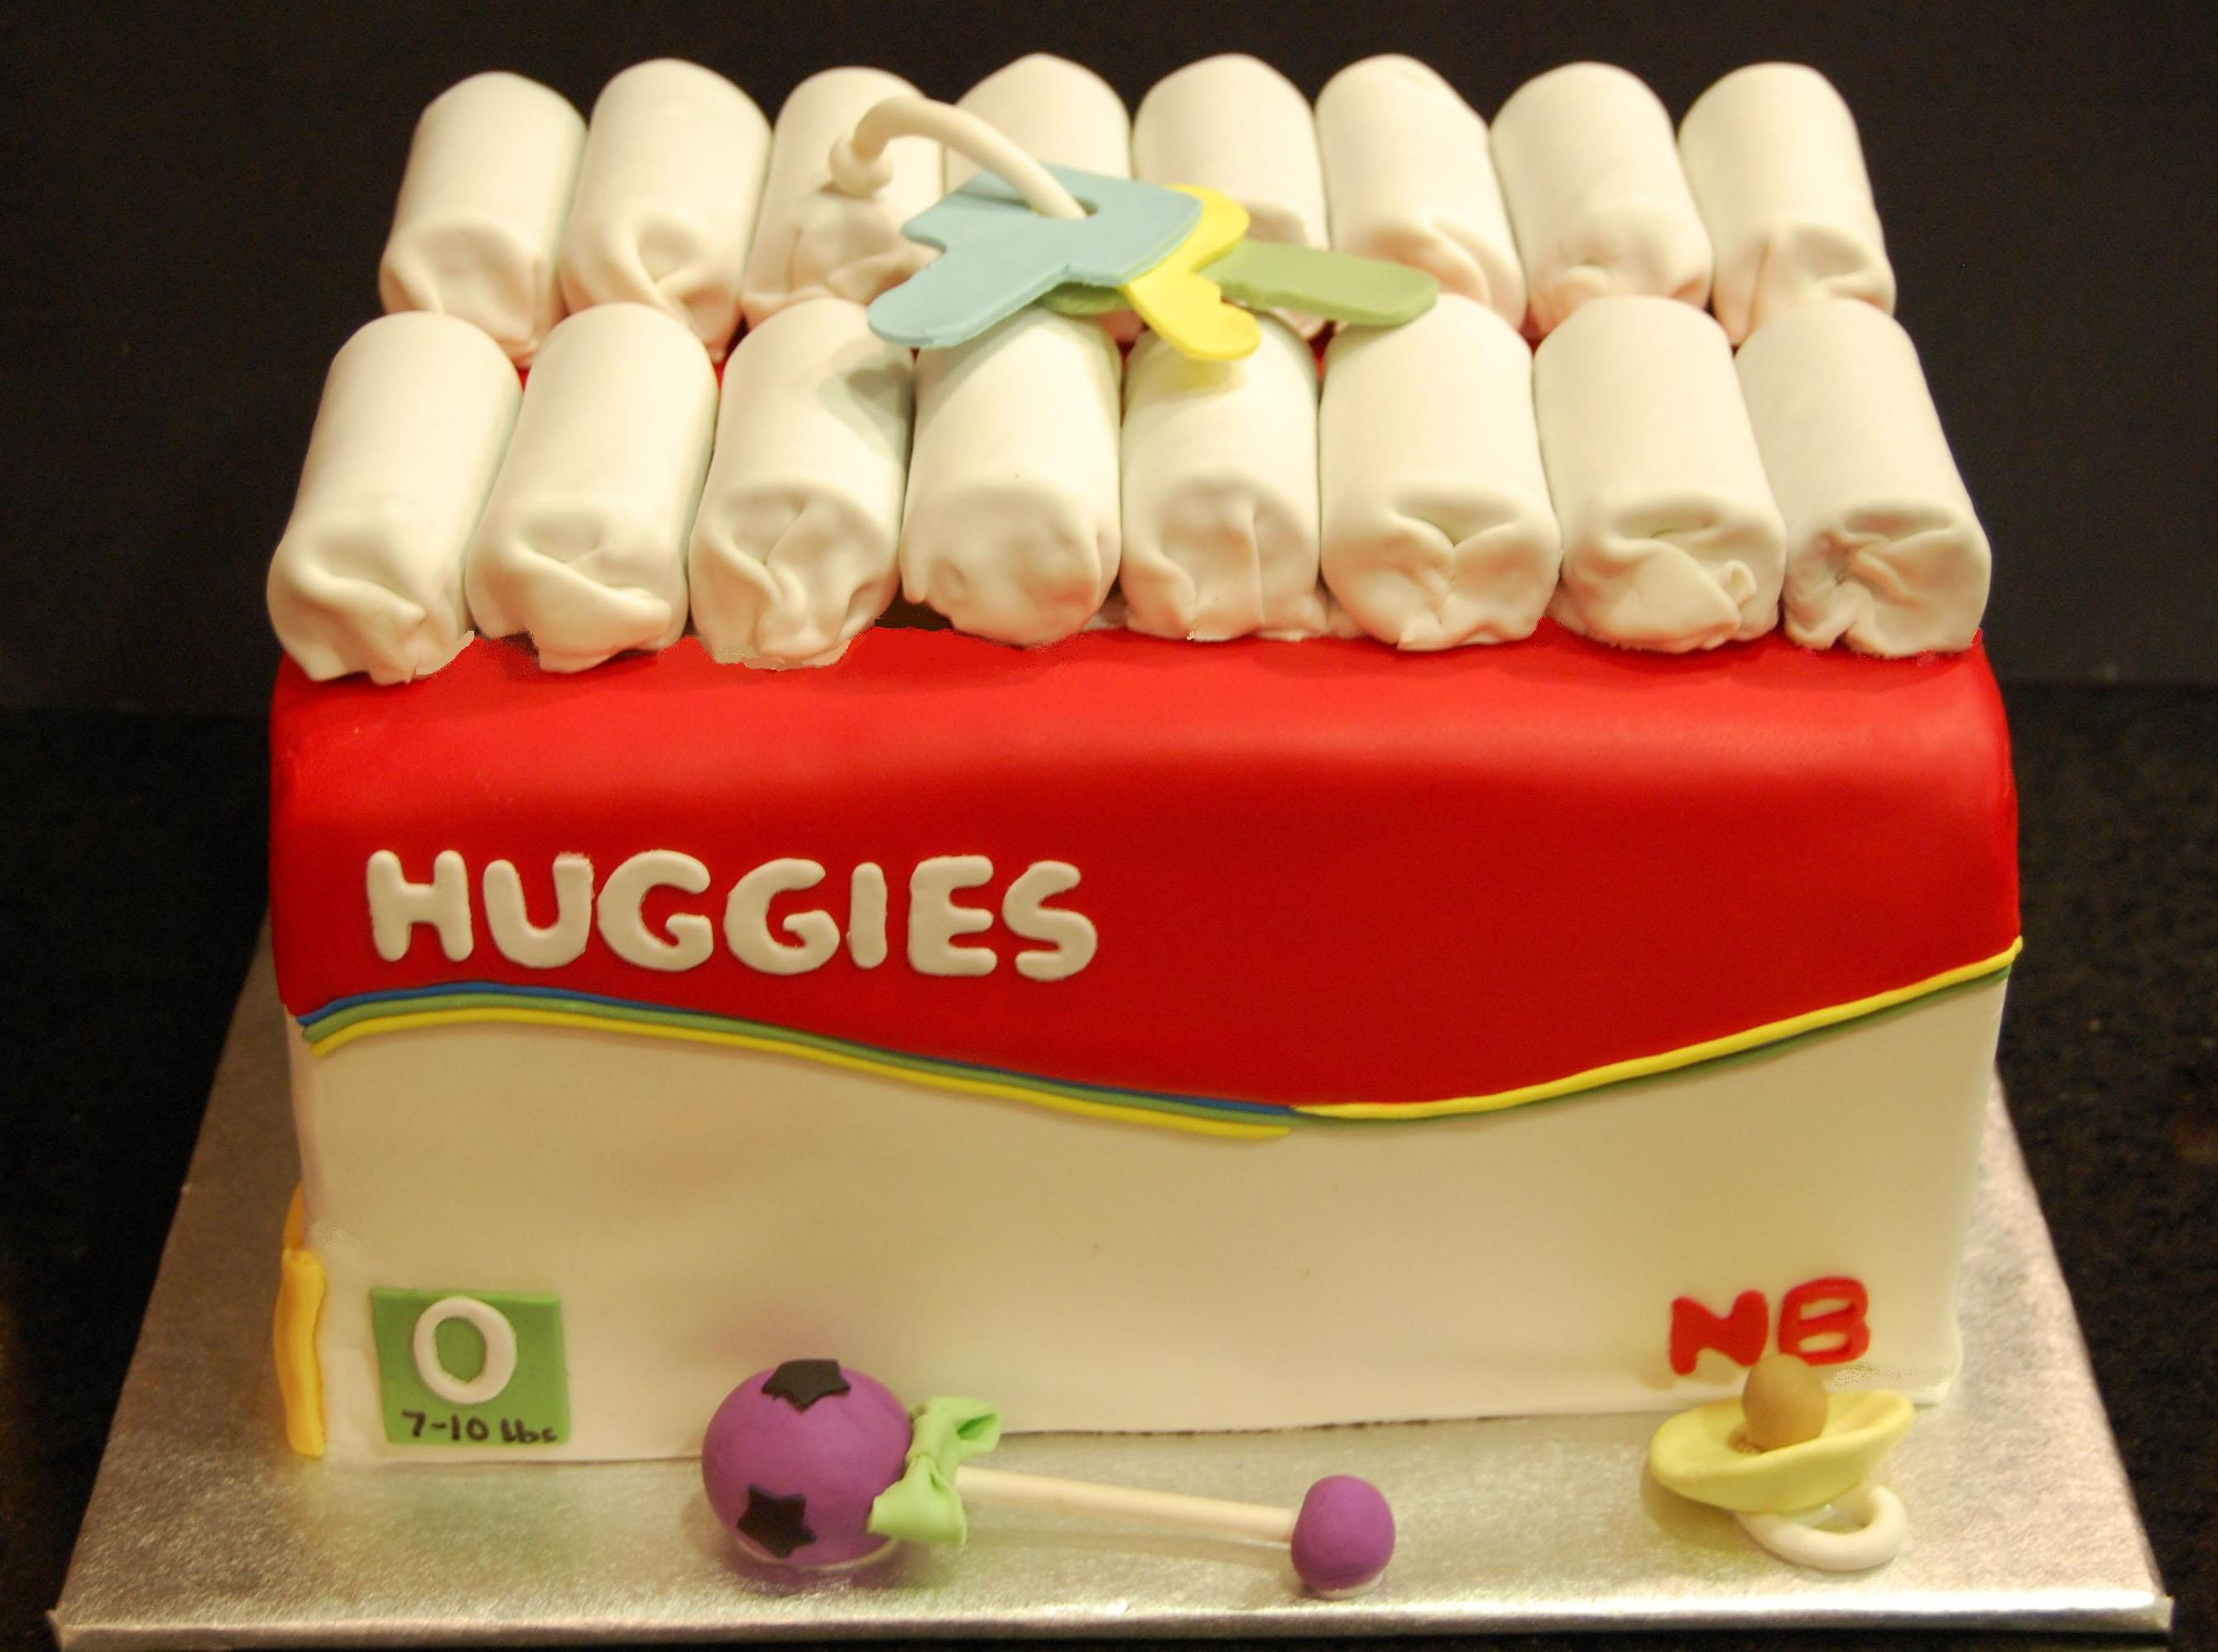 Baby shower cake designed like a huggies diaper box. everything edible